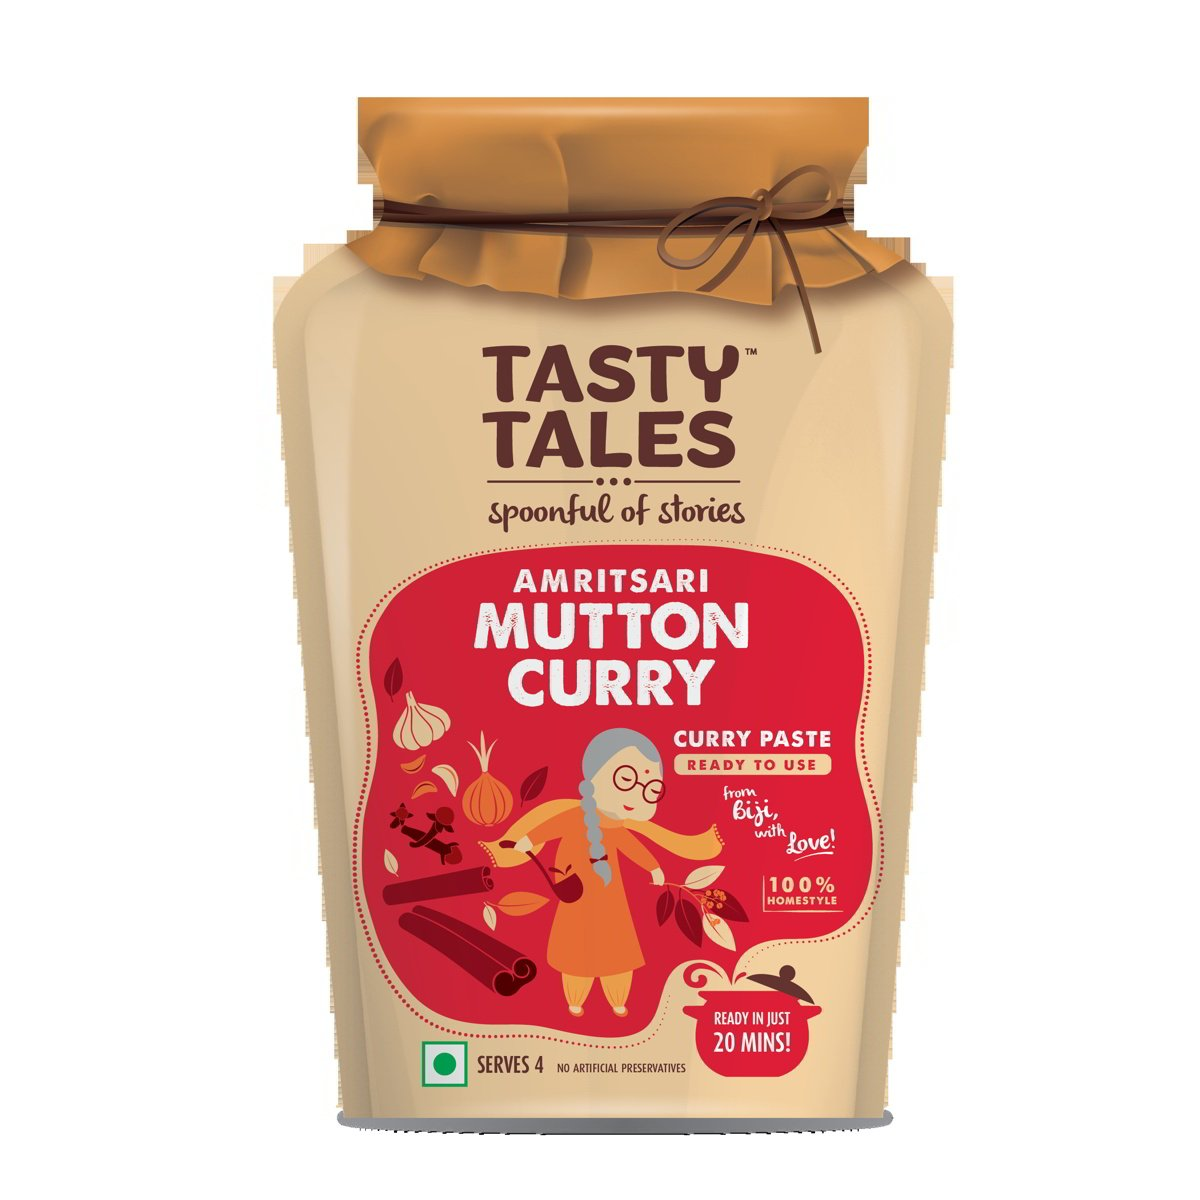 Amritsari Mutton Curry (Pack of 2)